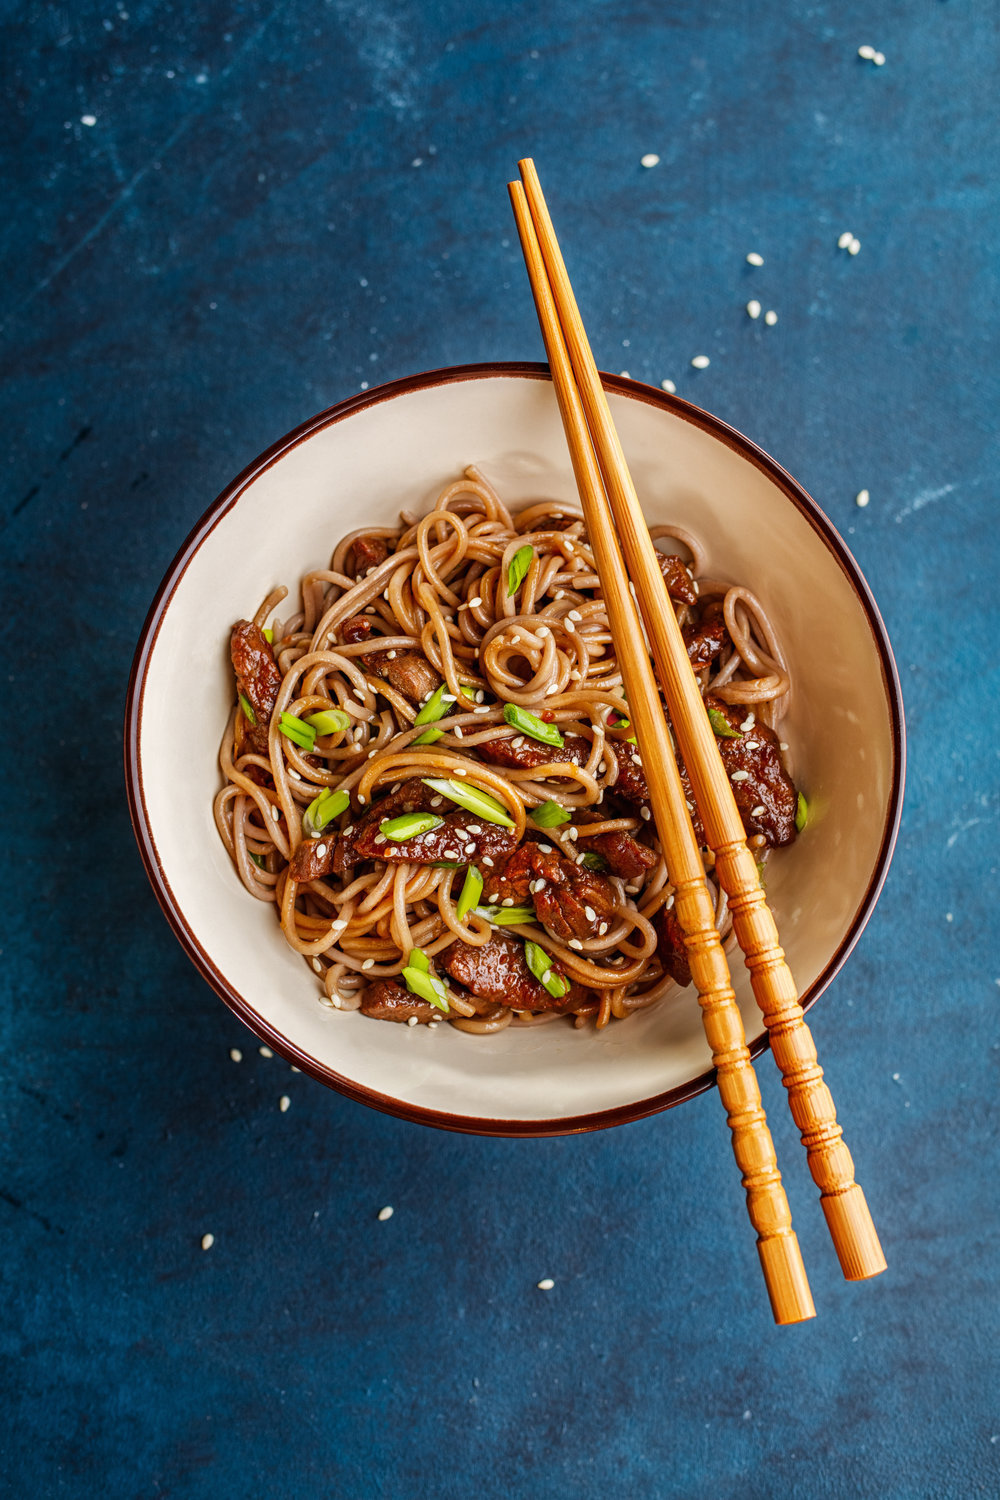 Online Personal Trainer Main Meal Recipes -Chinese Beef Noodles.jpg